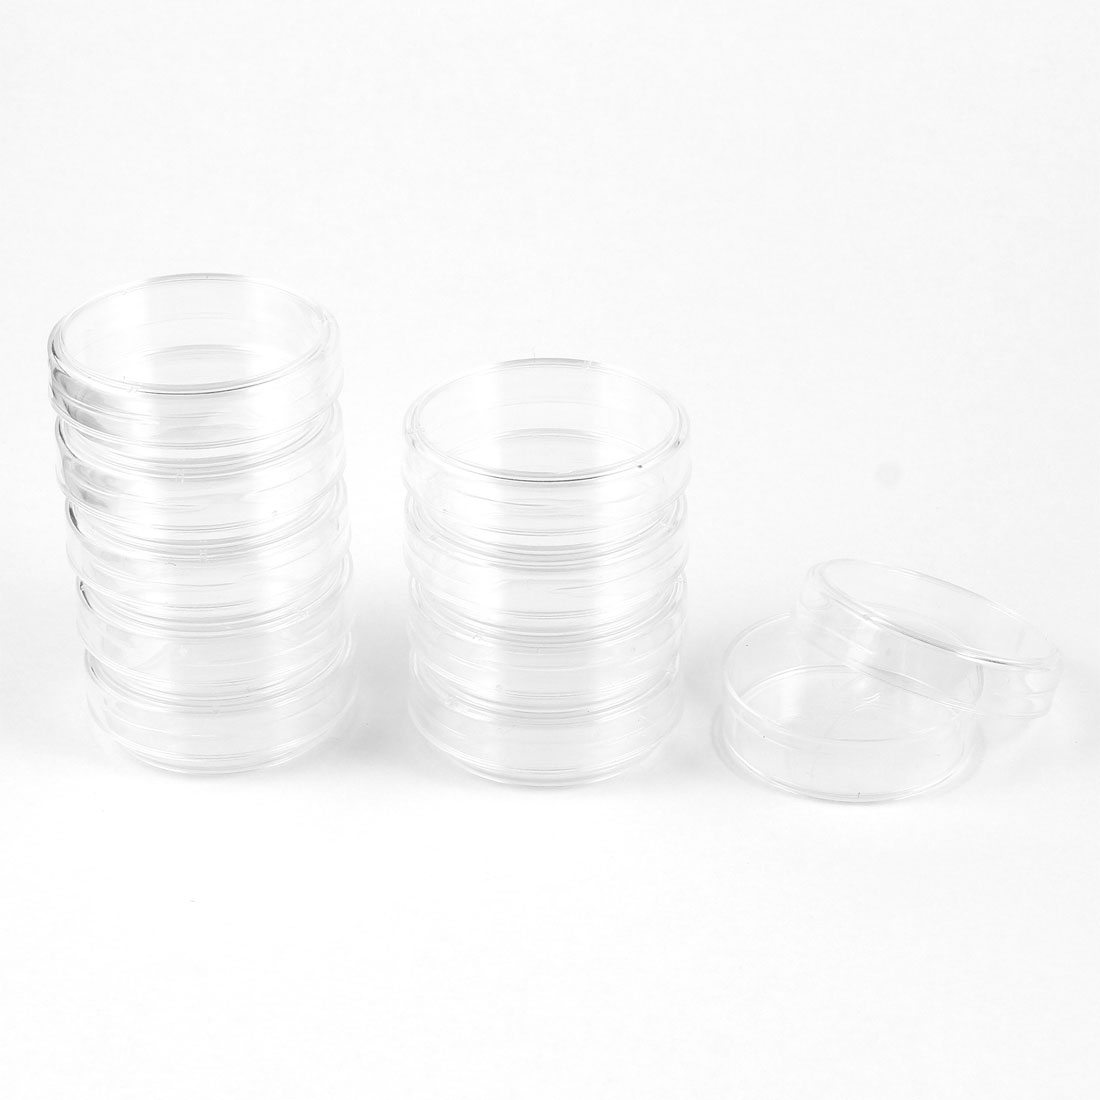 Chemical Experiment 38mm Dia Rounded Shape Cell Culture Dish Clear 10 Pcs